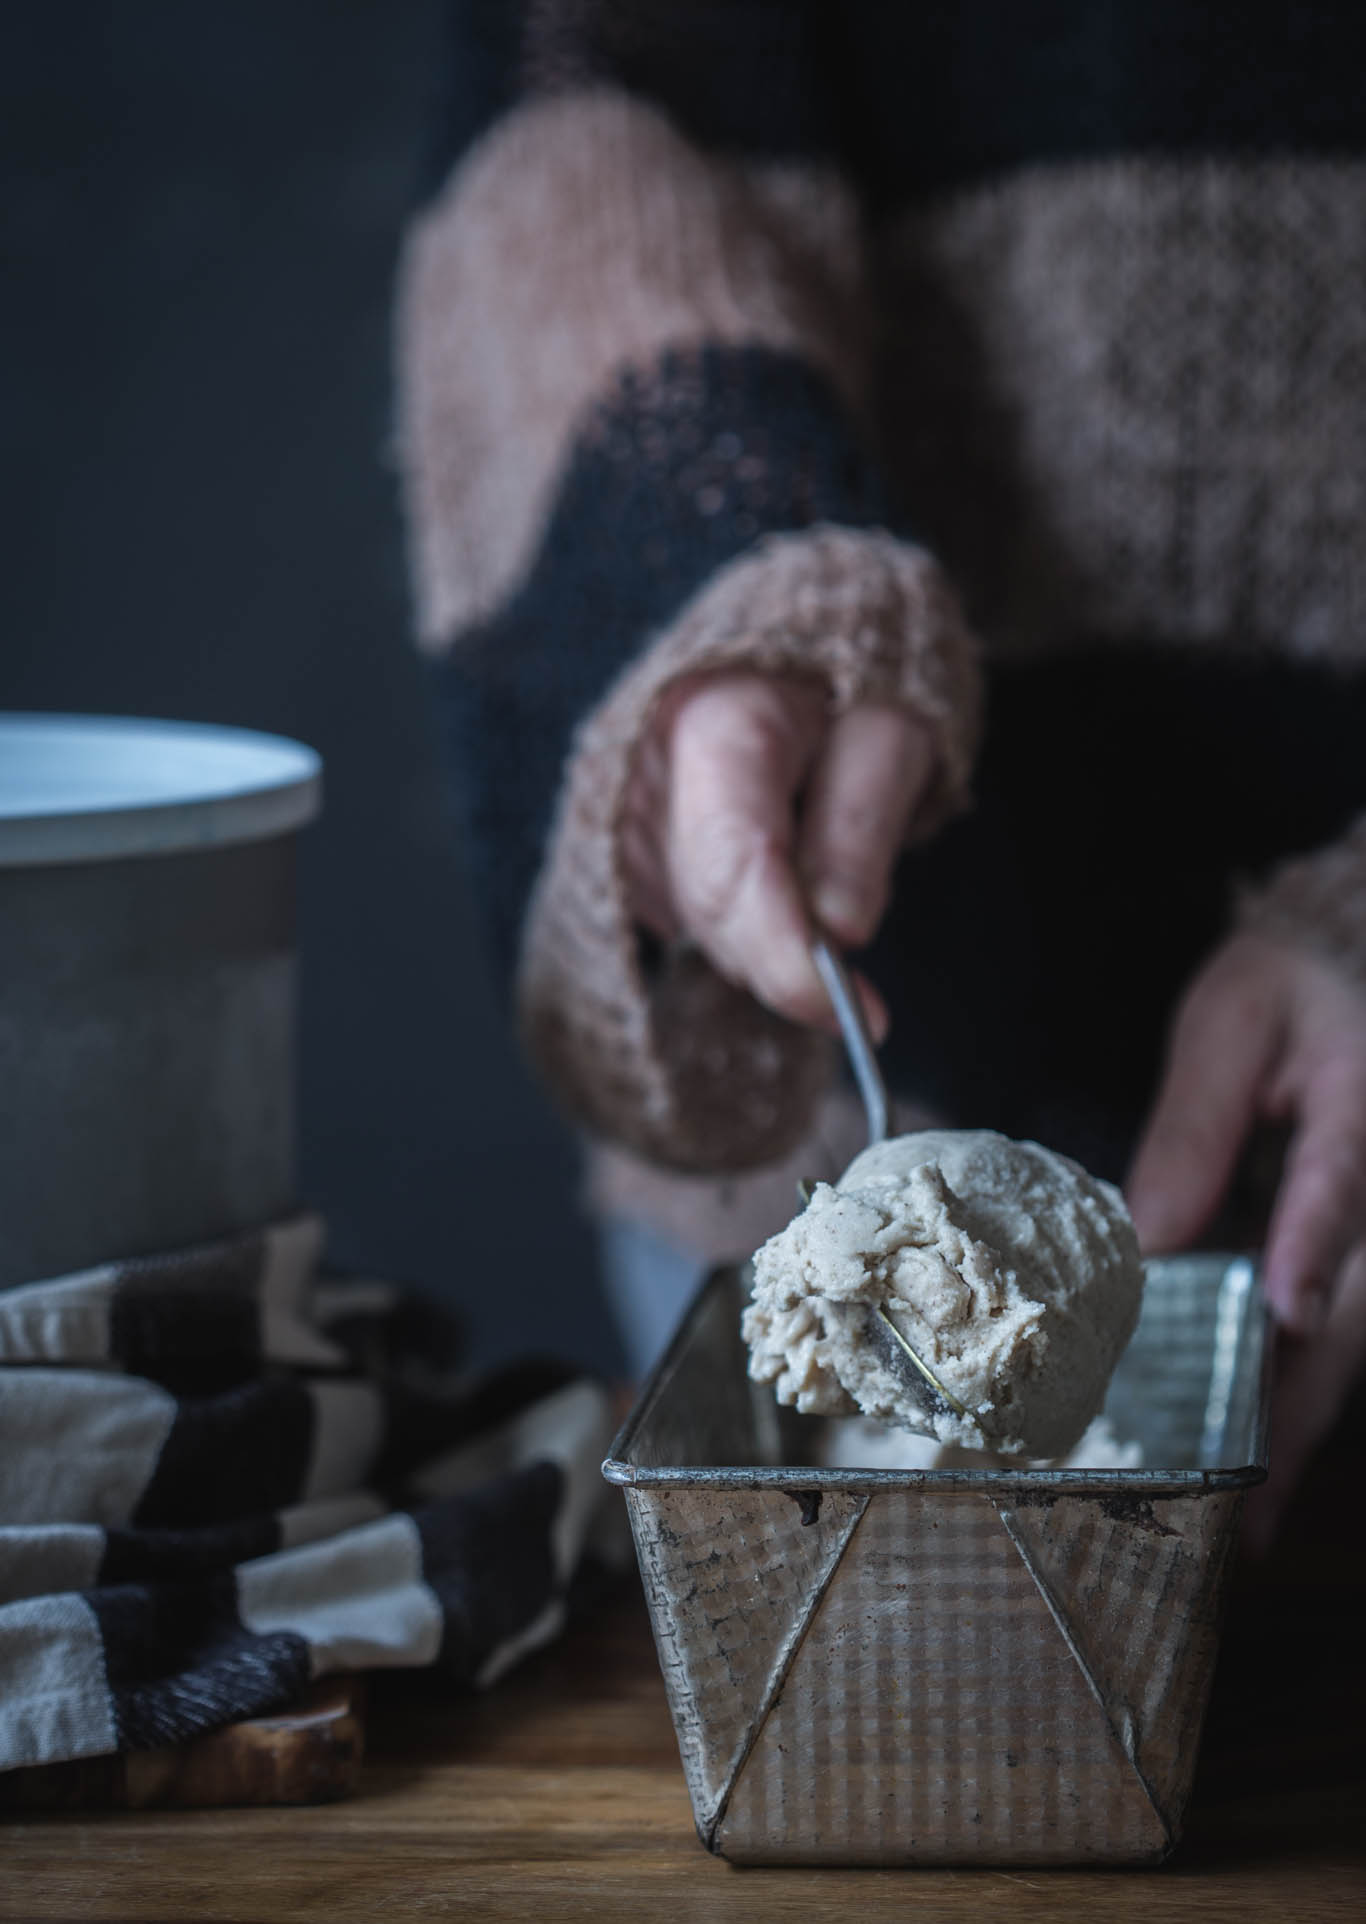 A woman scooping a big scoop of ice cream from a vintage metal loaf tin.